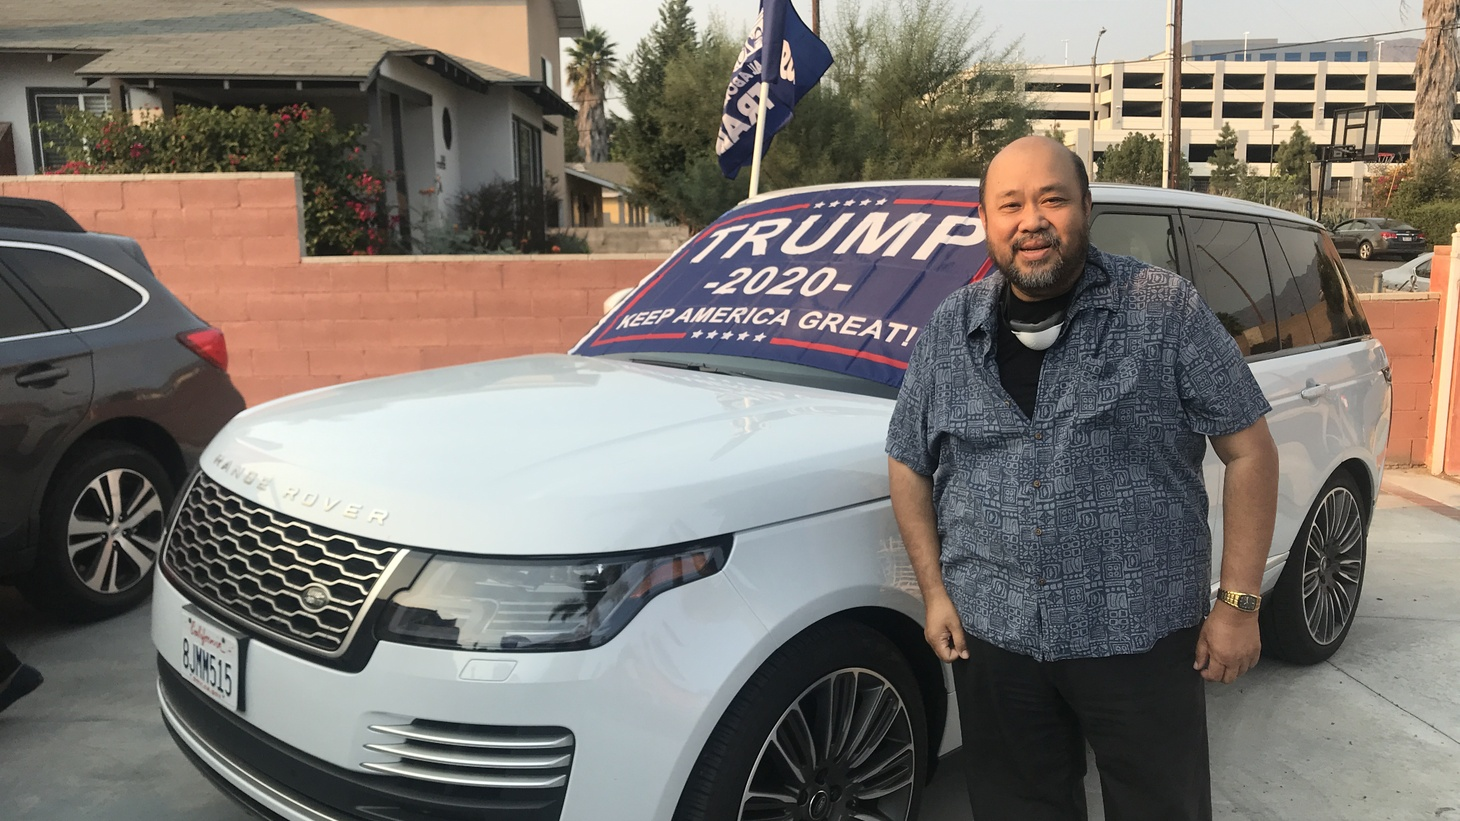 Noel Omega, a Filipino American and Trump supporter, stands outside one of the cars being decorated ahead of a weekend rally.